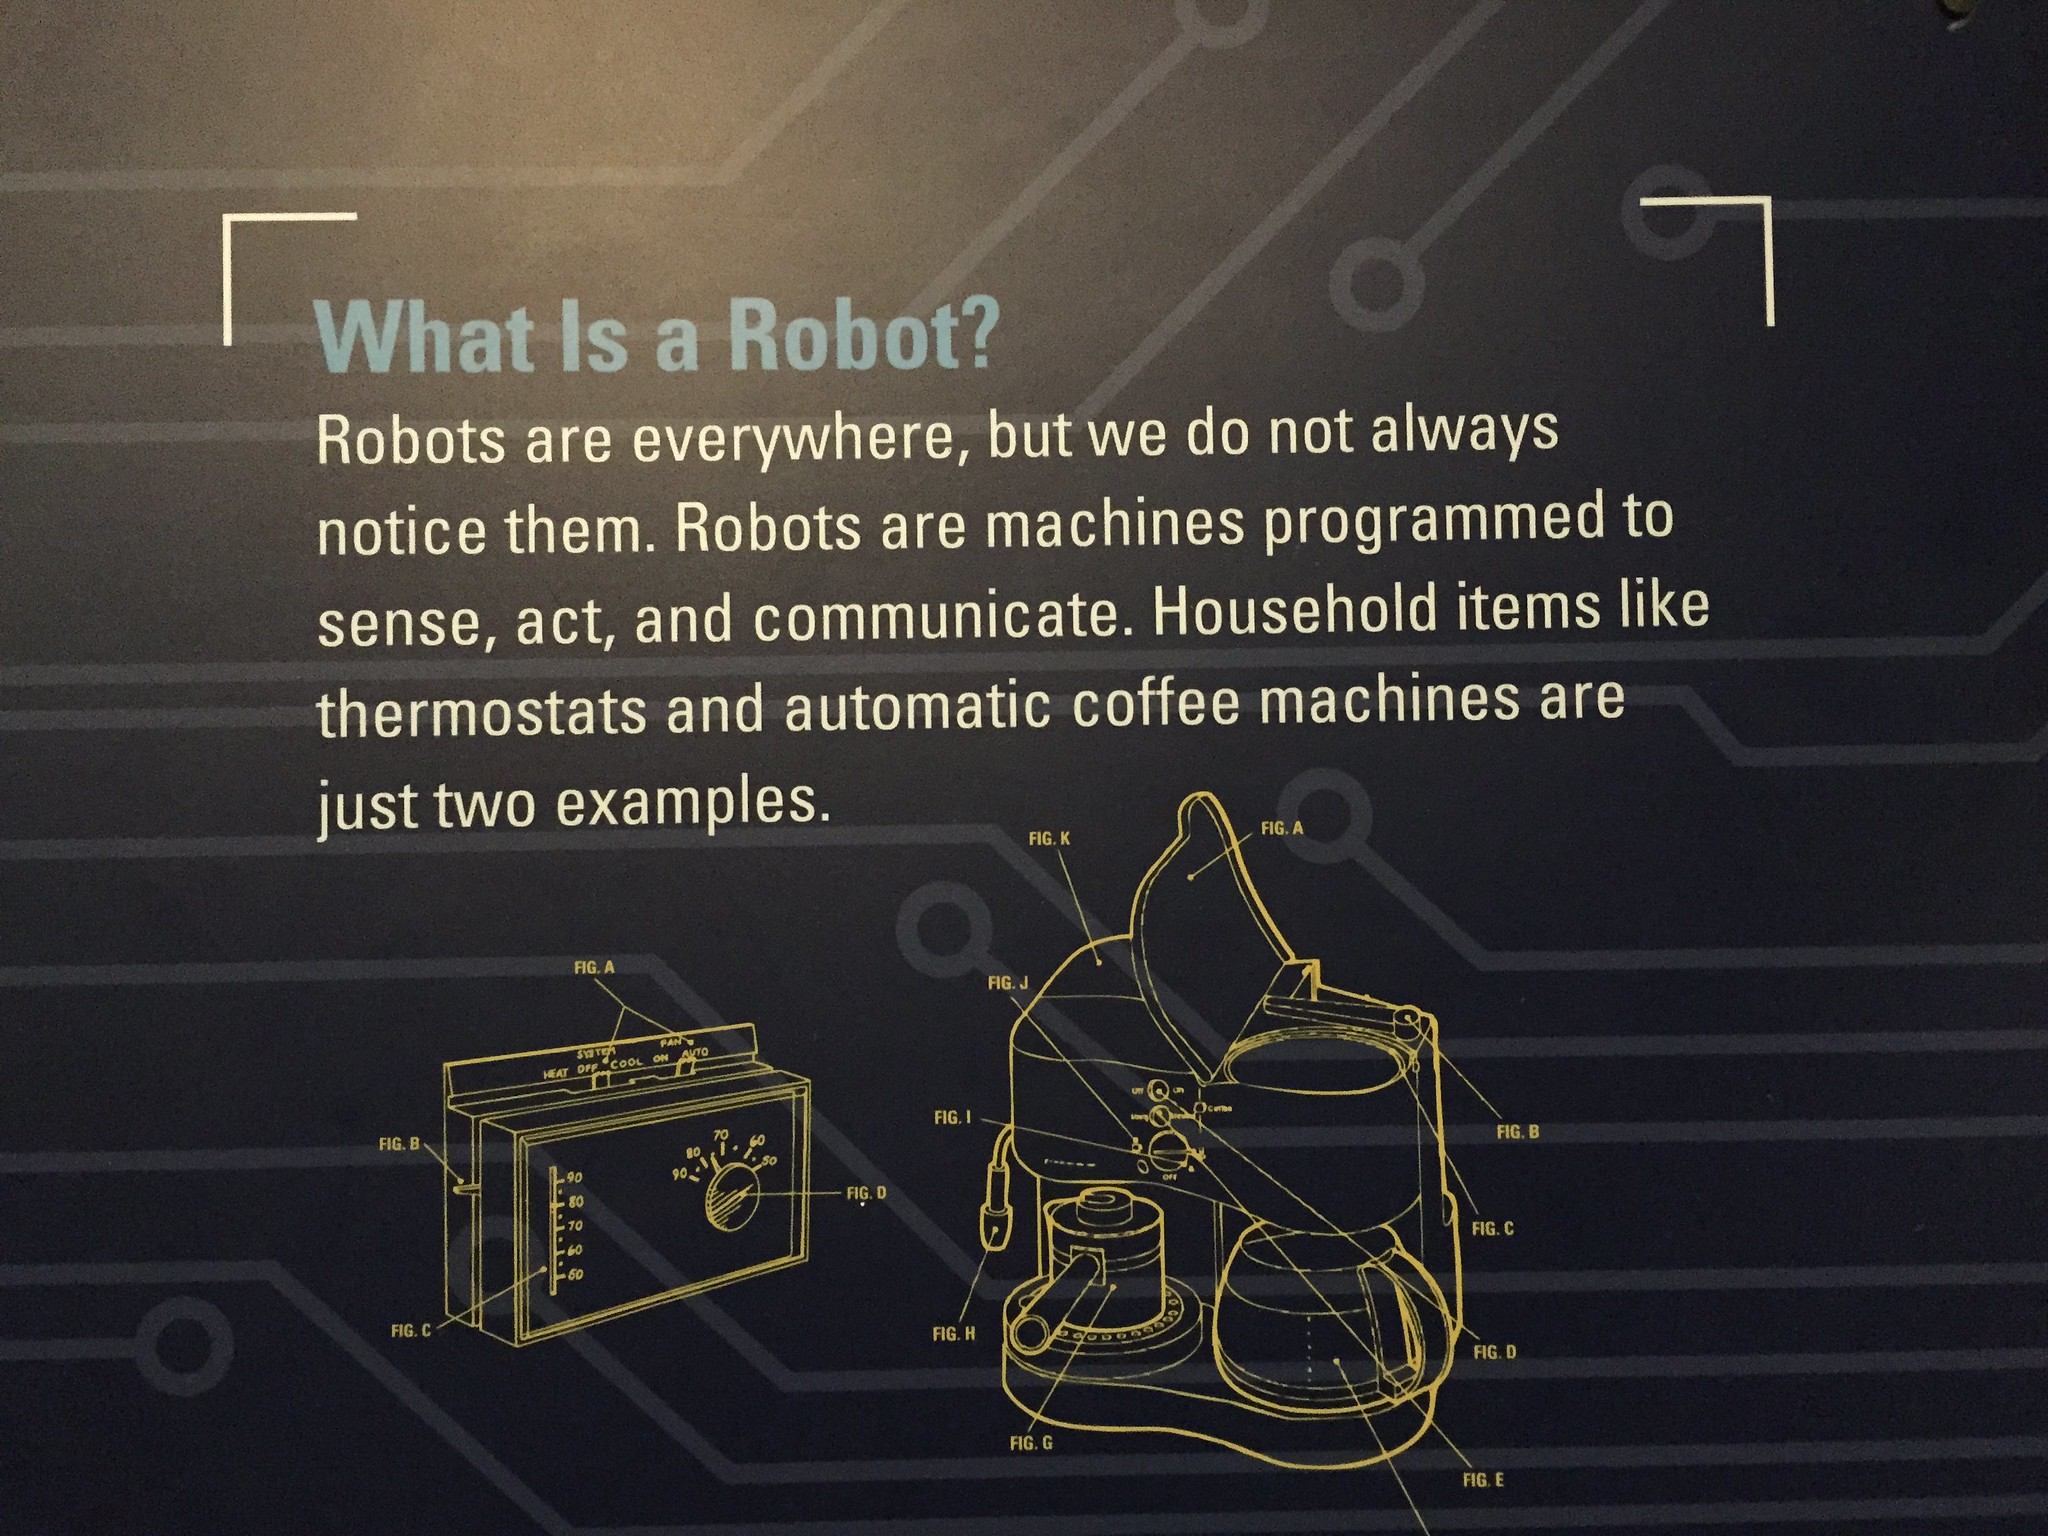 Definition of what a robot is